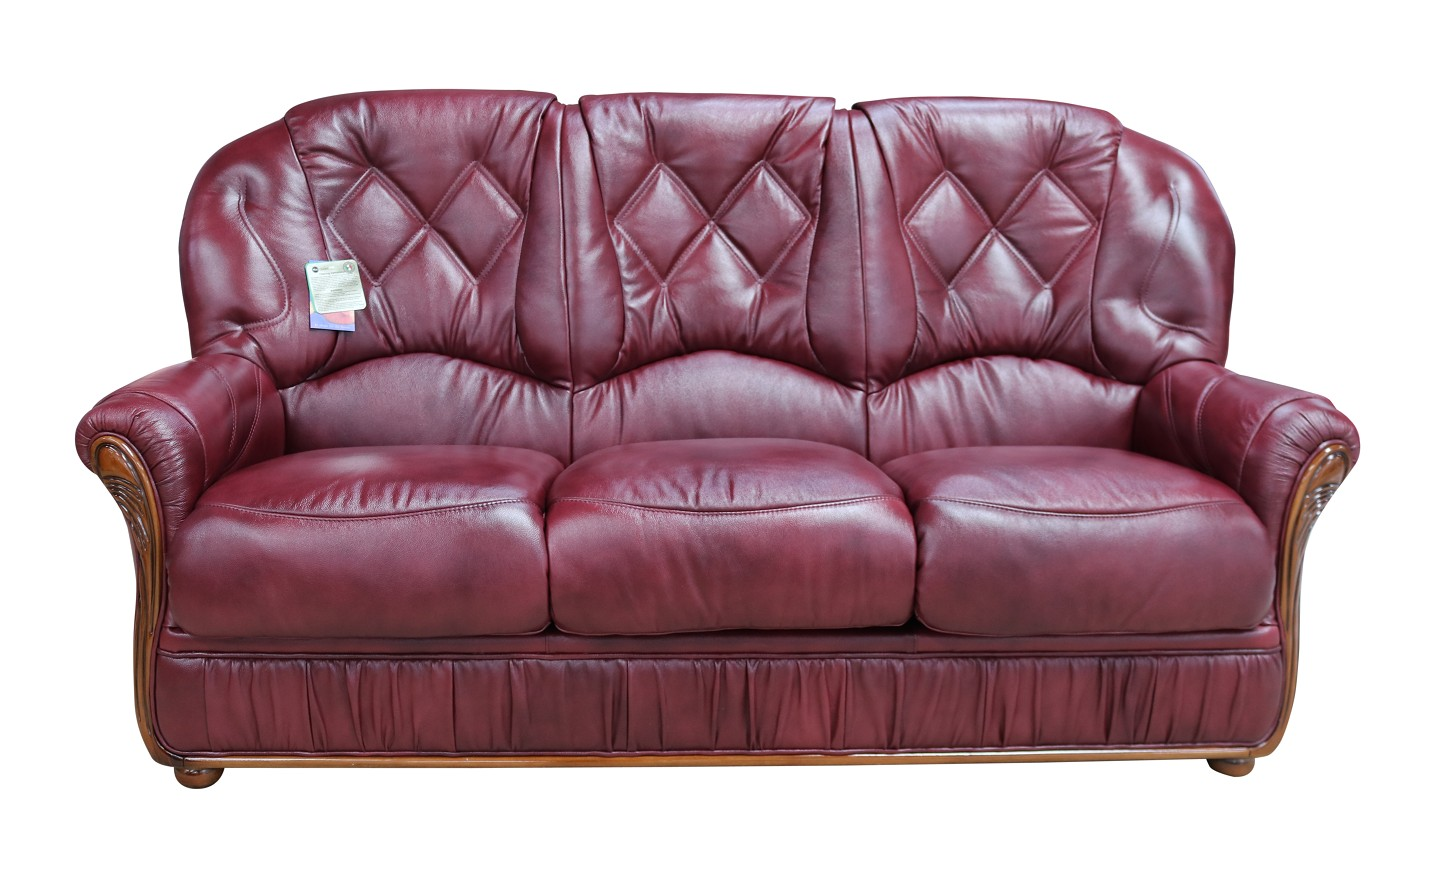 Astounding Rome Genuine Italian Leather 3 Seater Sofa Settee Burgundy Machost Co Dining Chair Design Ideas Machostcouk